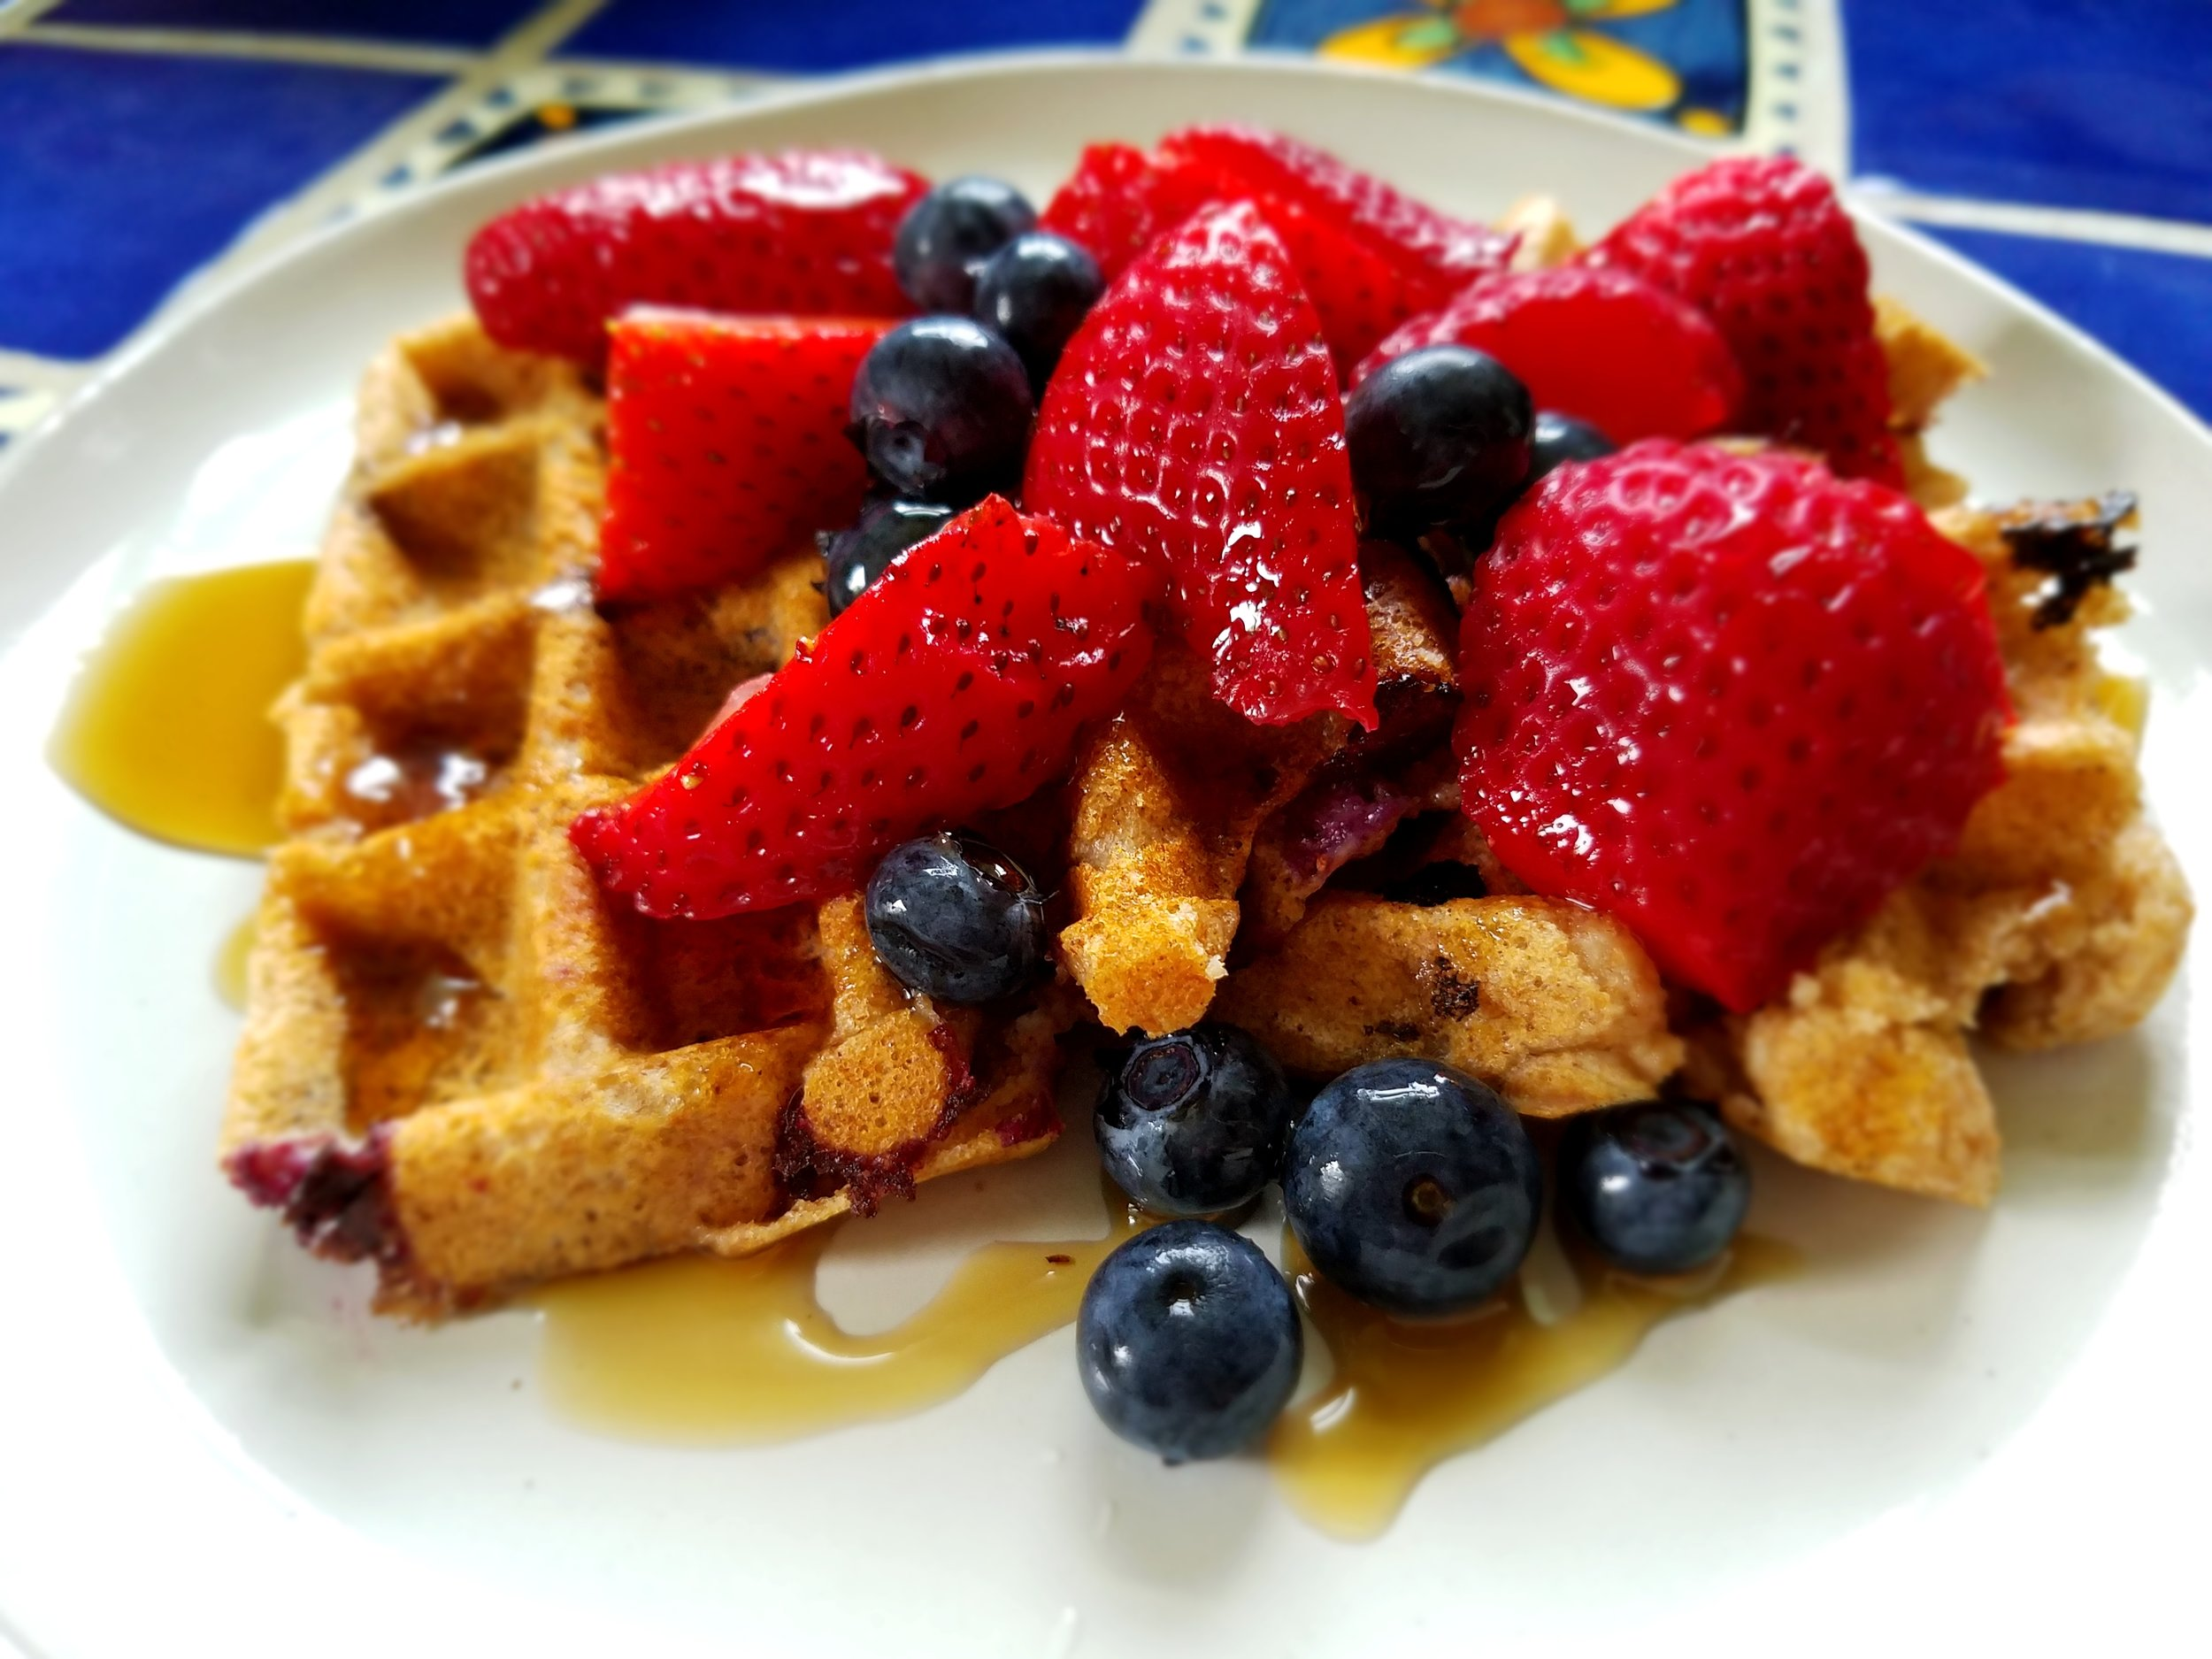 New-york-state-berry-growers-blueberry-strawberry-waffles-vegan-3.jpg